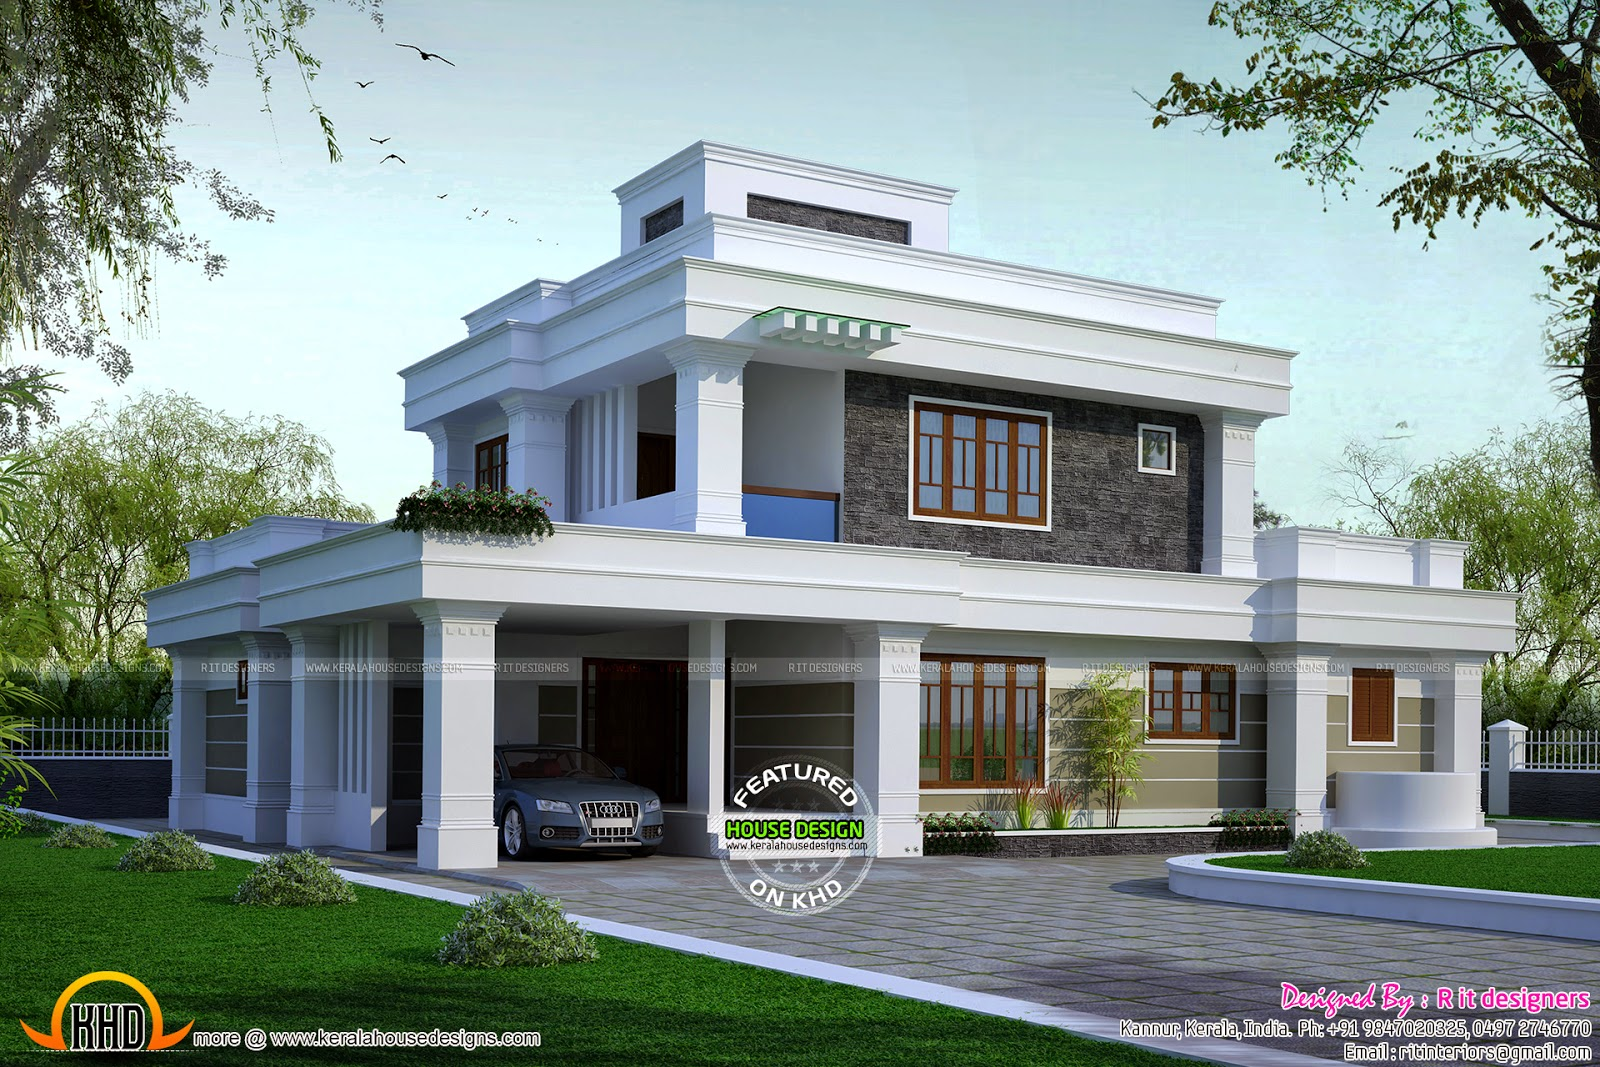 5 bhk flat roof house kerala home design and floor plans. Black Bedroom Furniture Sets. Home Design Ideas